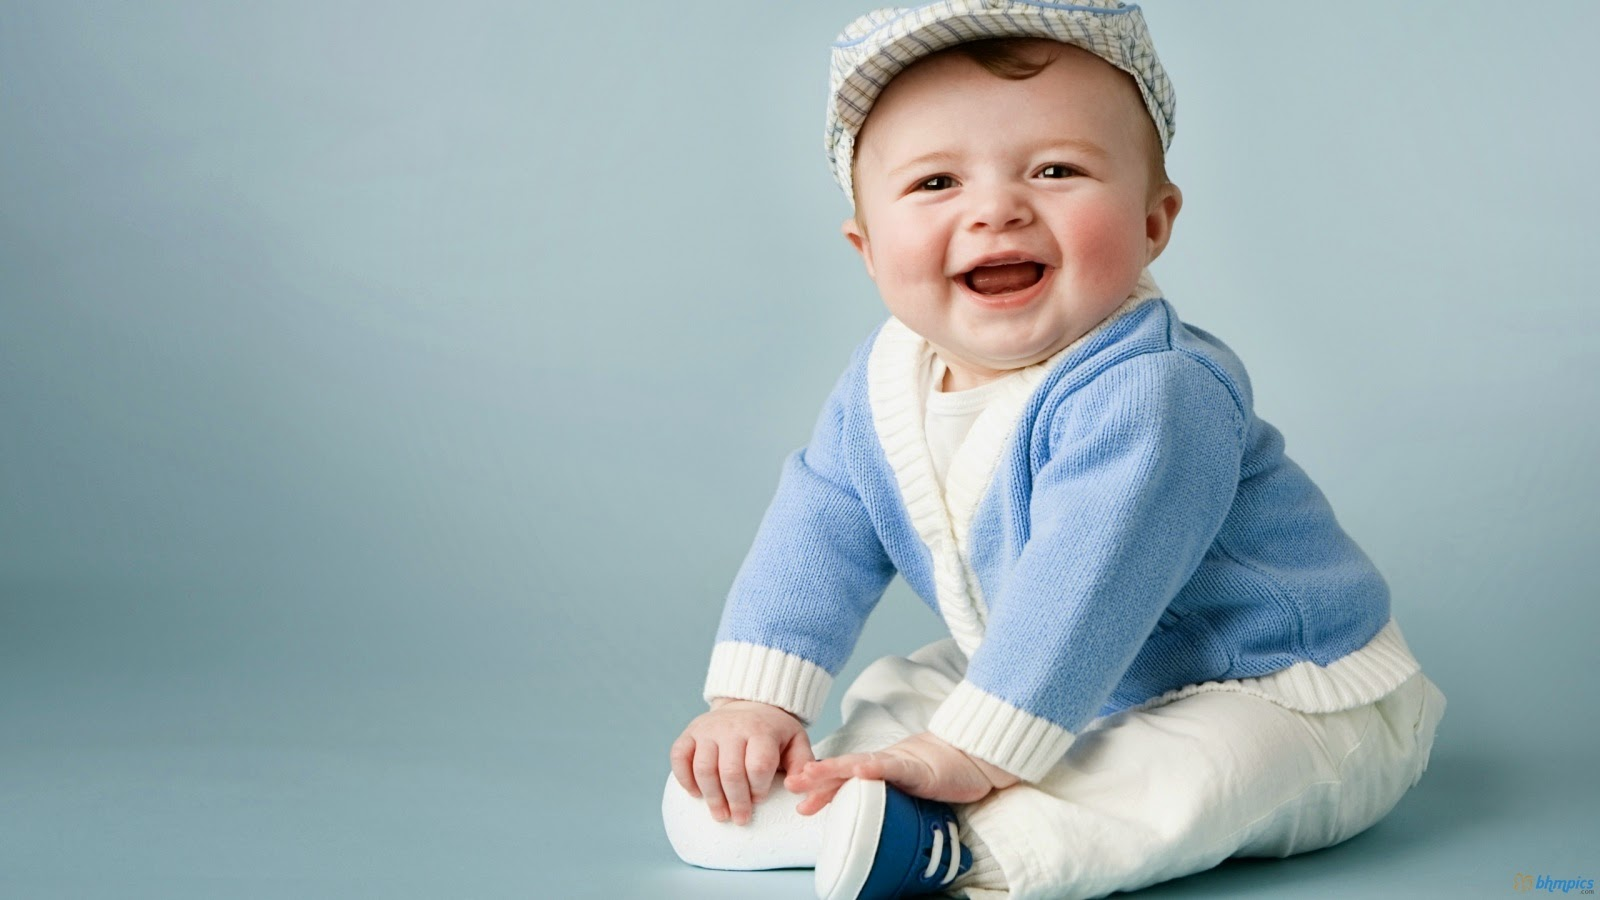 Cute Baby Smile HD Wallpapers Pics Download  HD Walls 1600x900